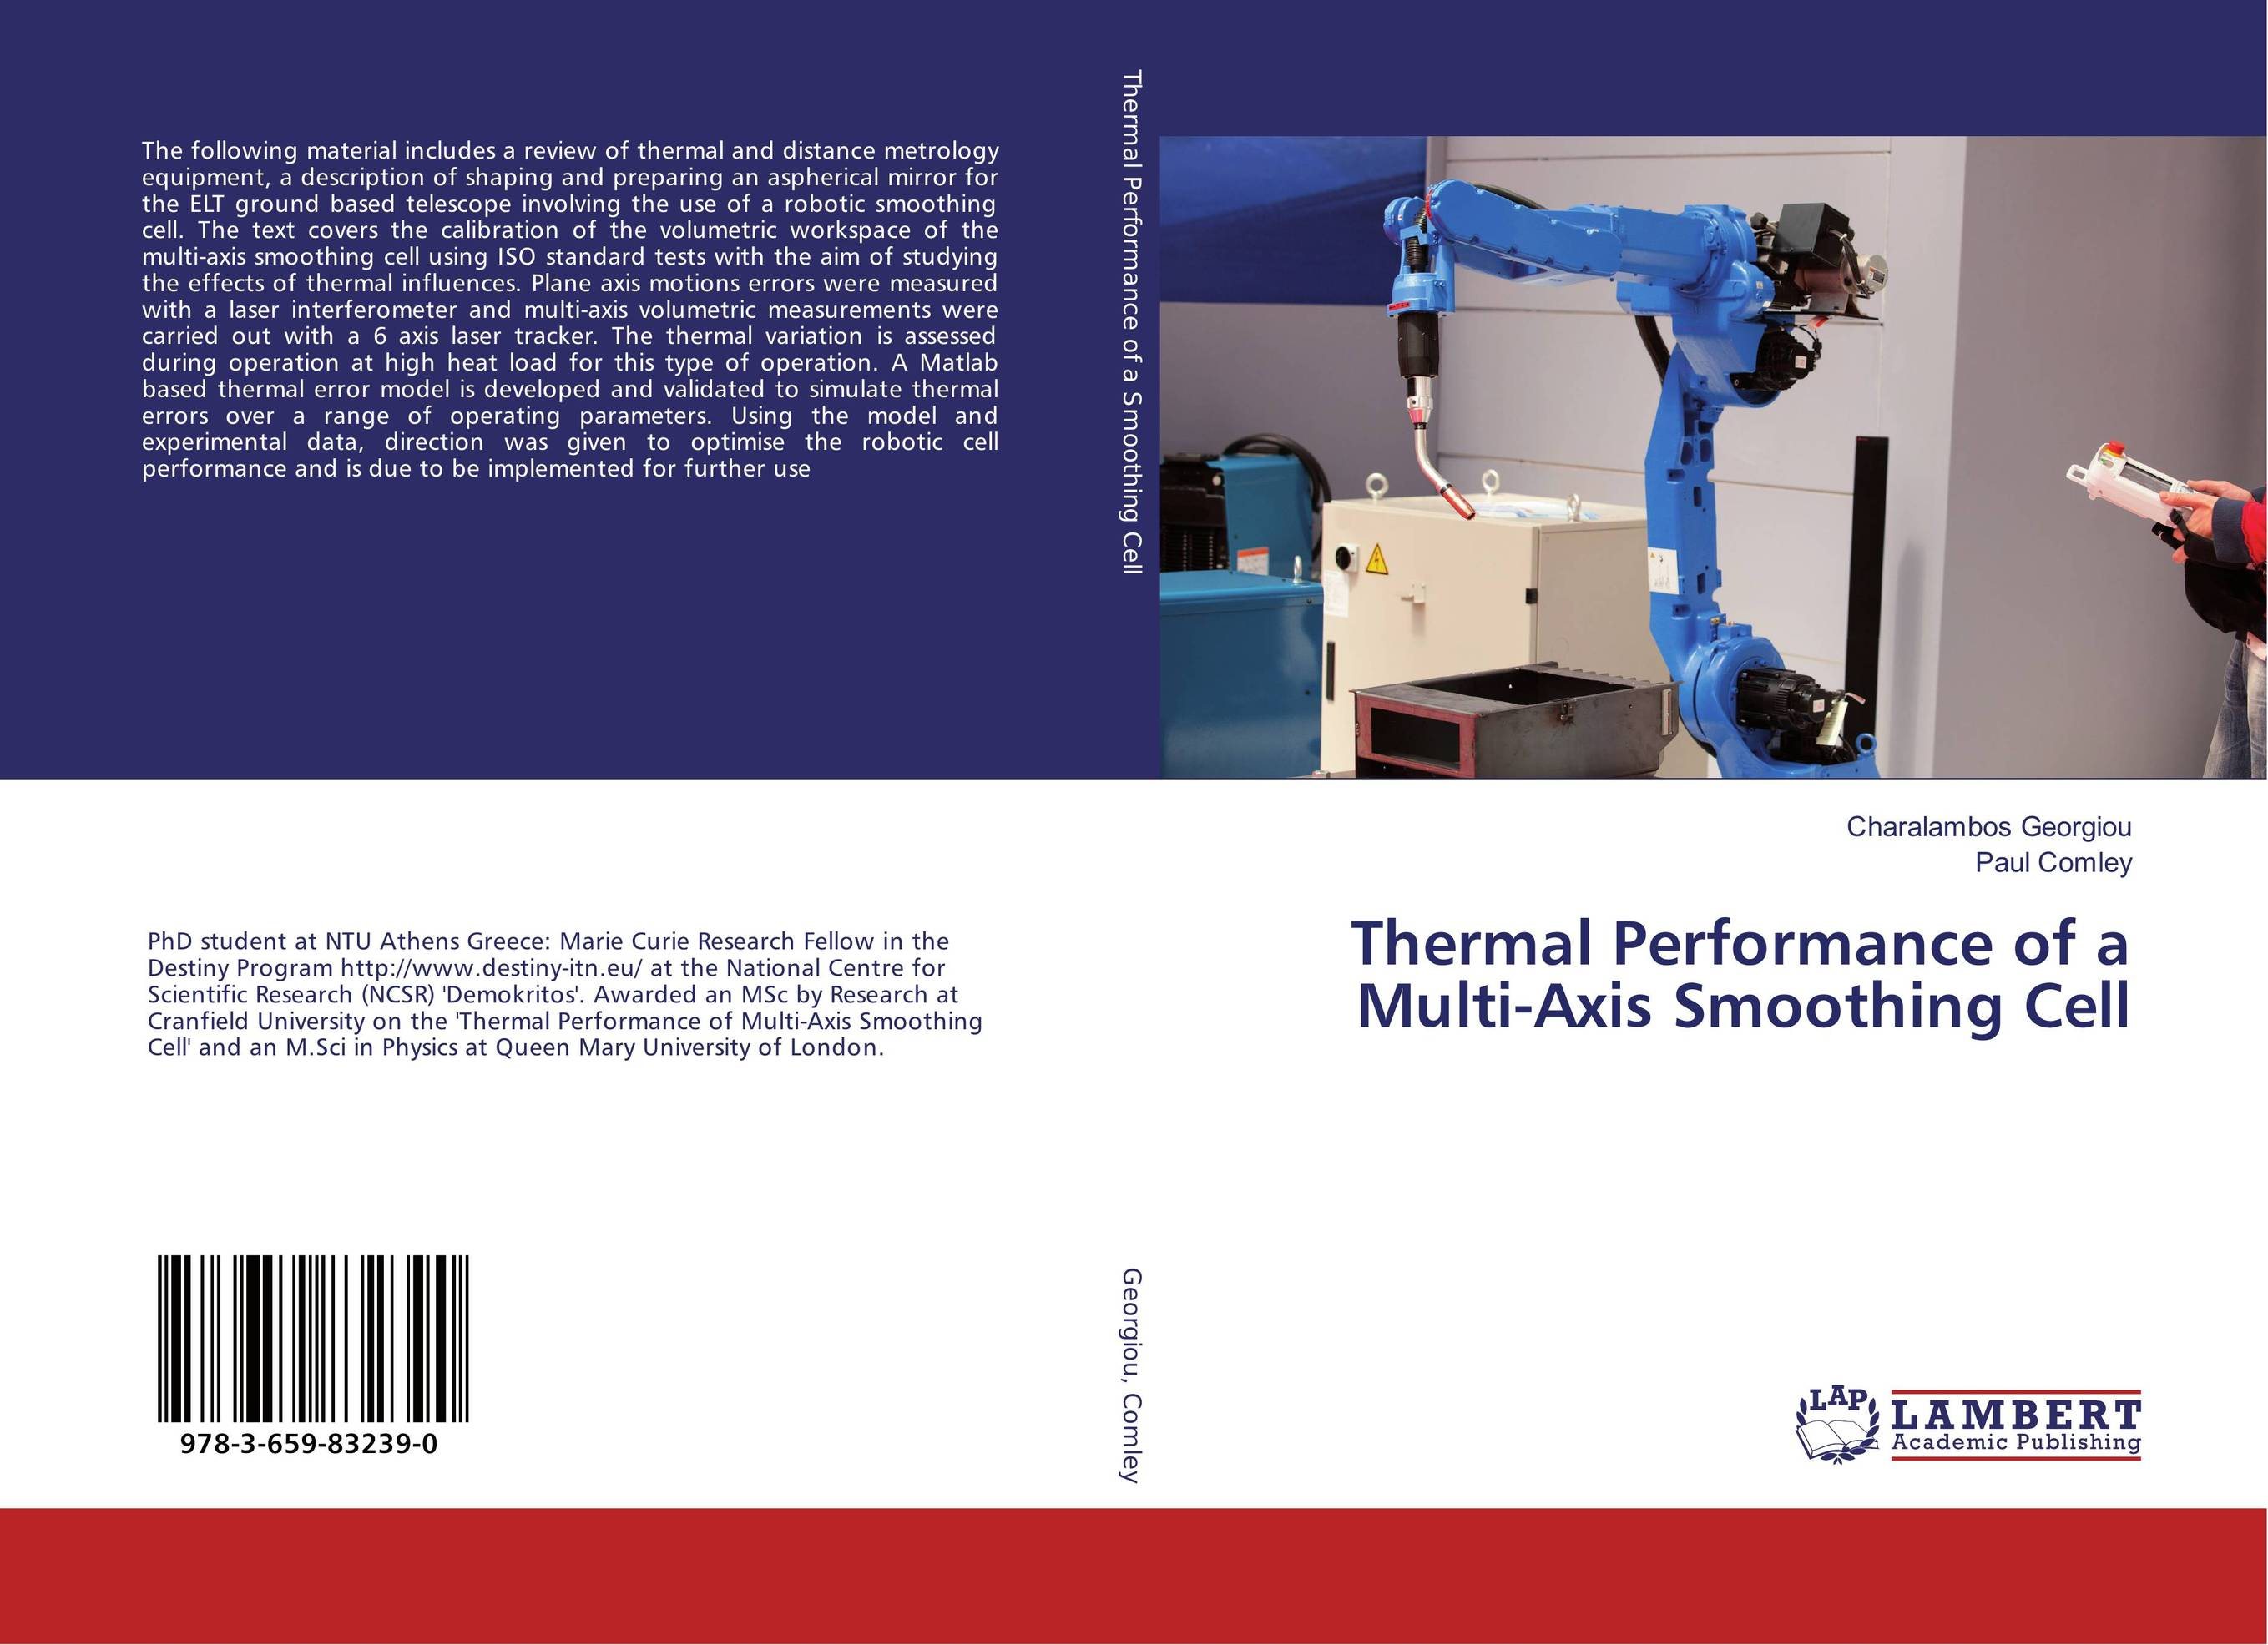 Thermal Performance of a Multi-Axis Smoothing Cell metrology